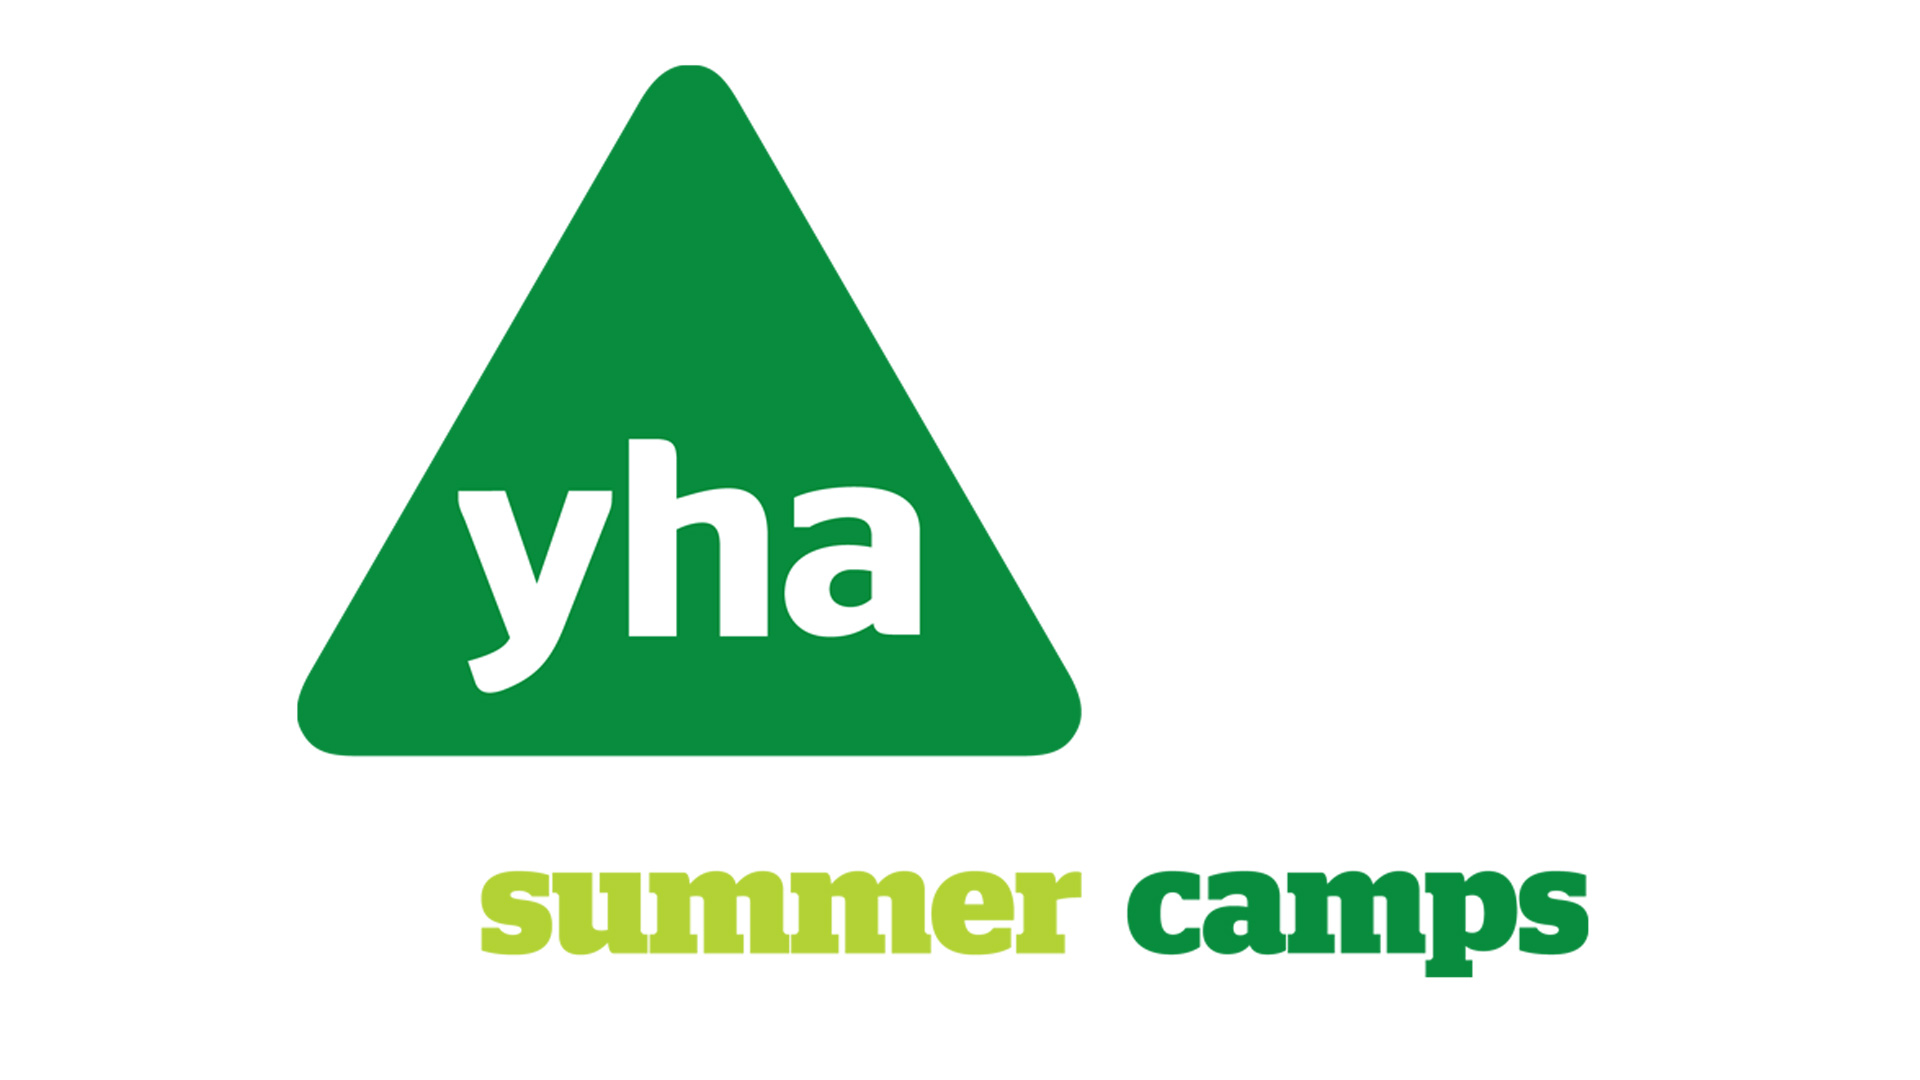 YHA Summer Camps